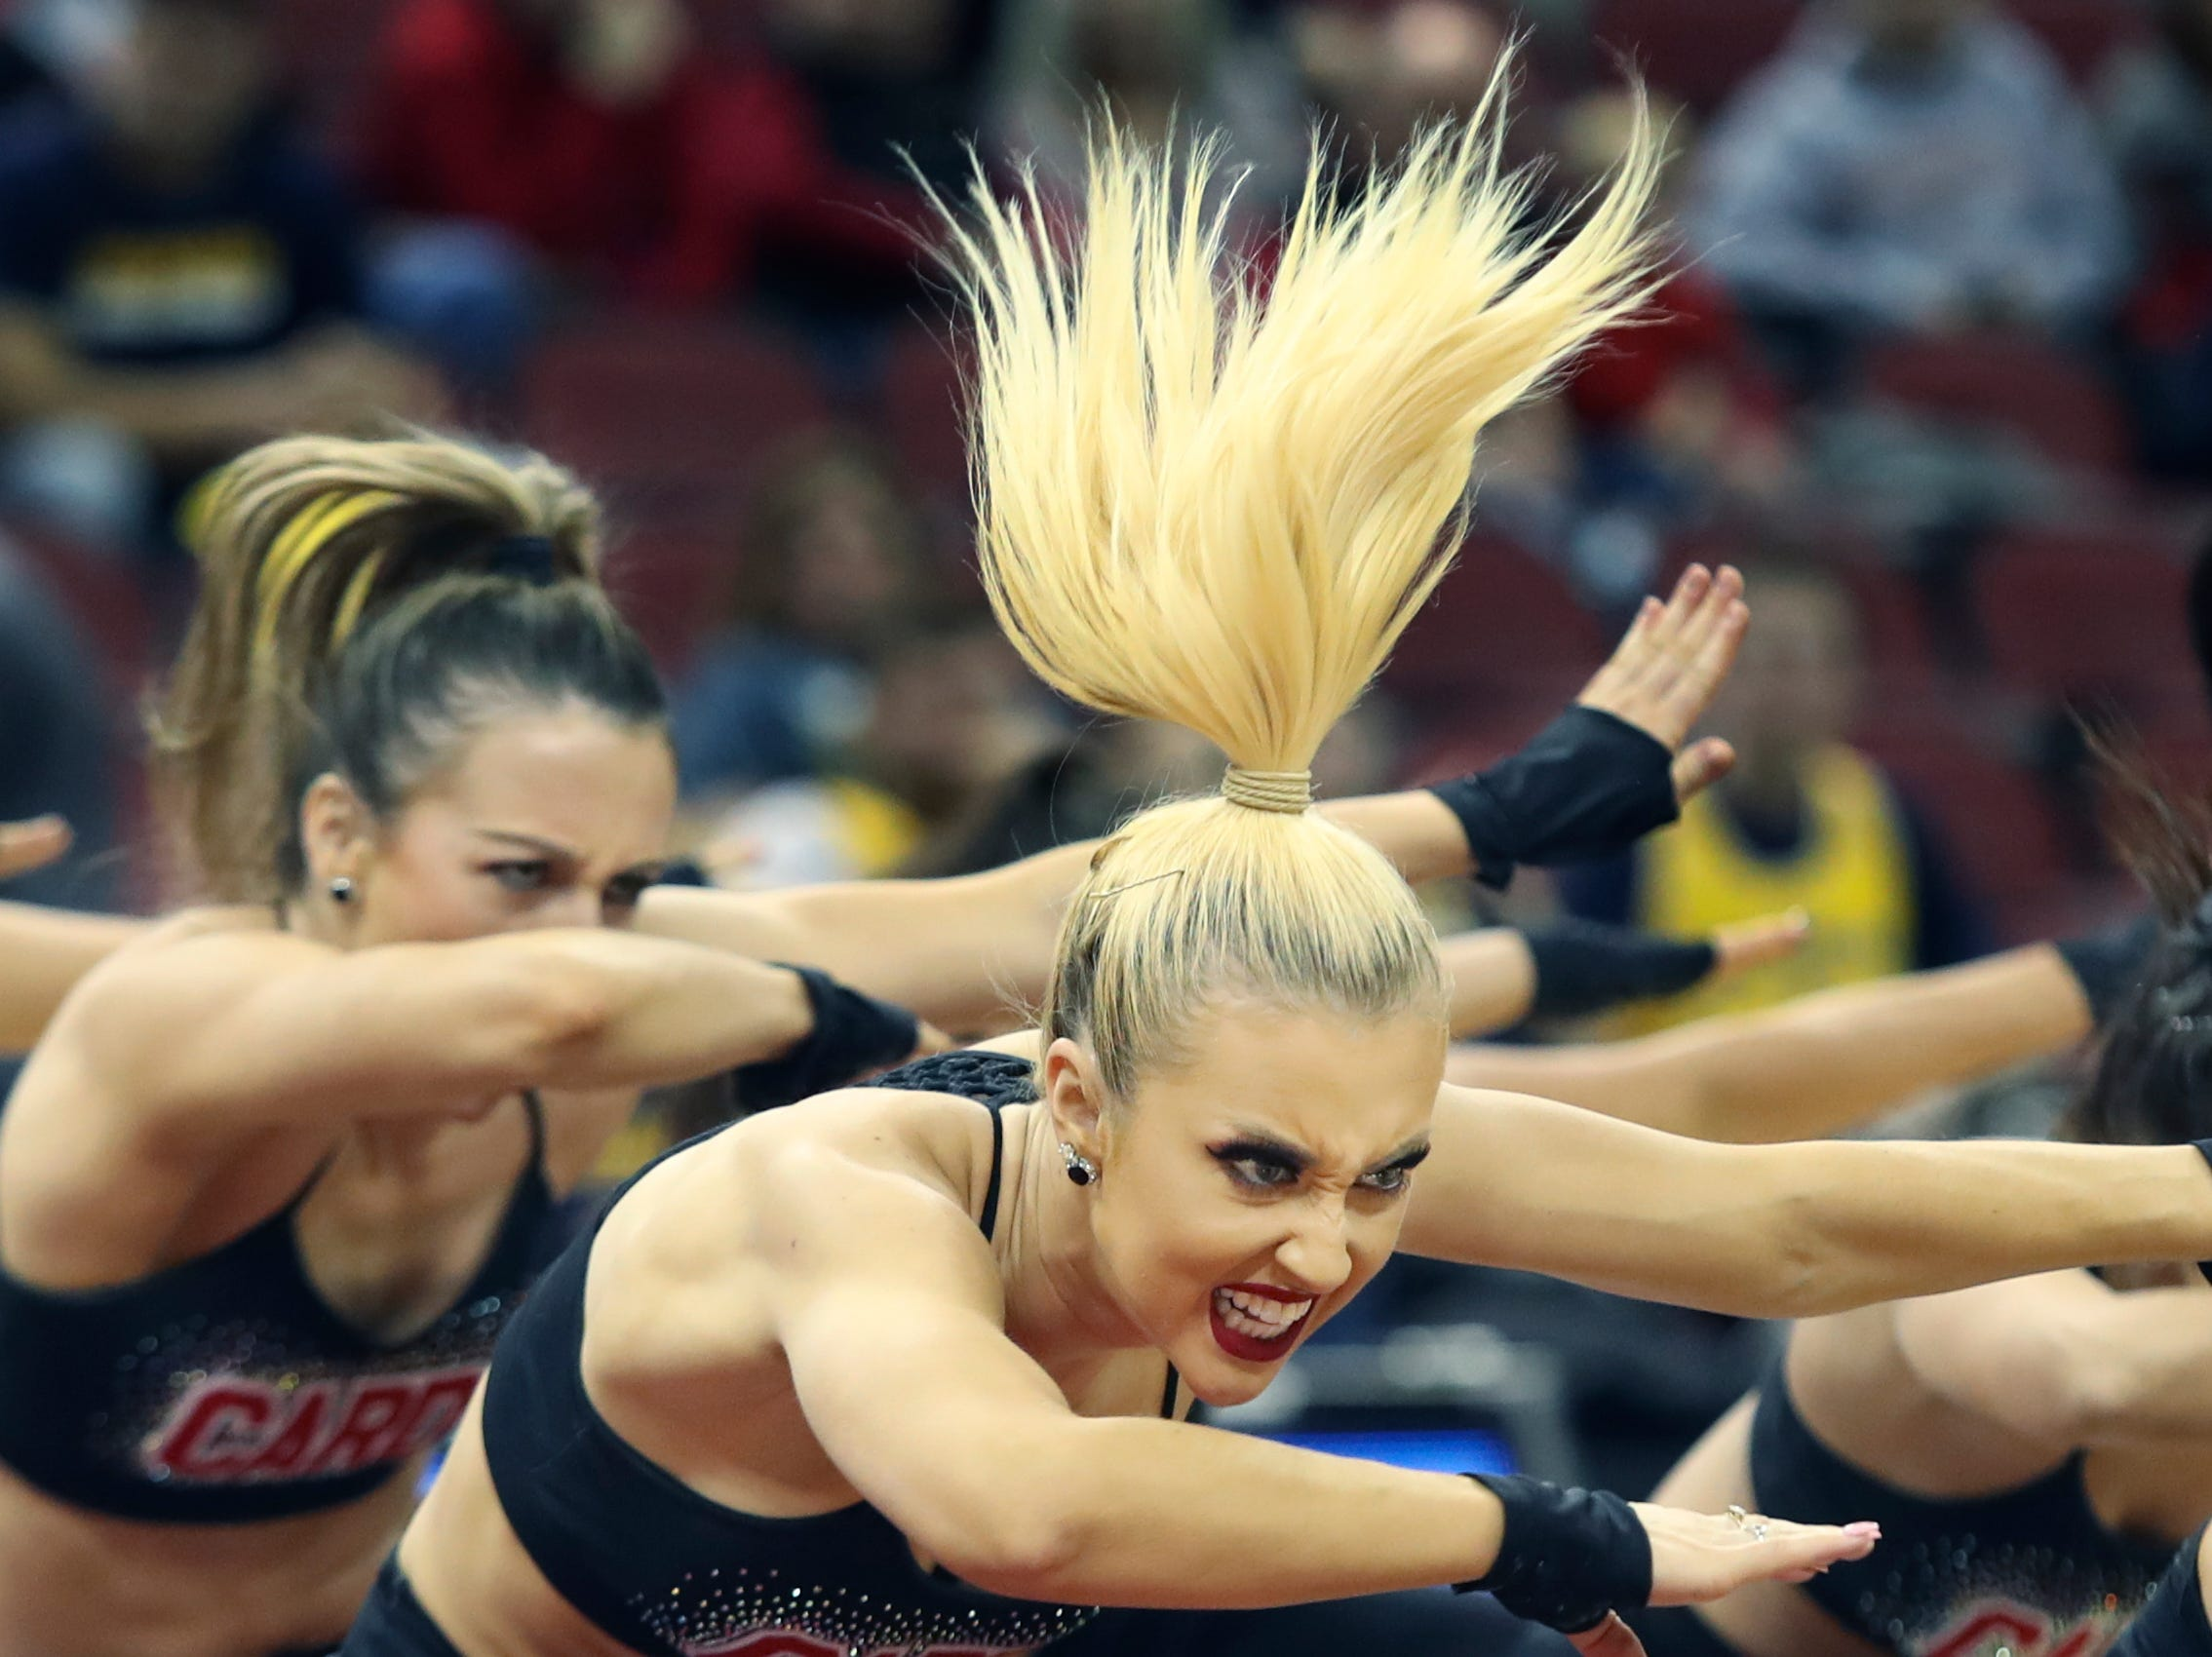 The Louisville Ladybirds entertain the crowd during halftime at the KFC Yum Center on March 24.